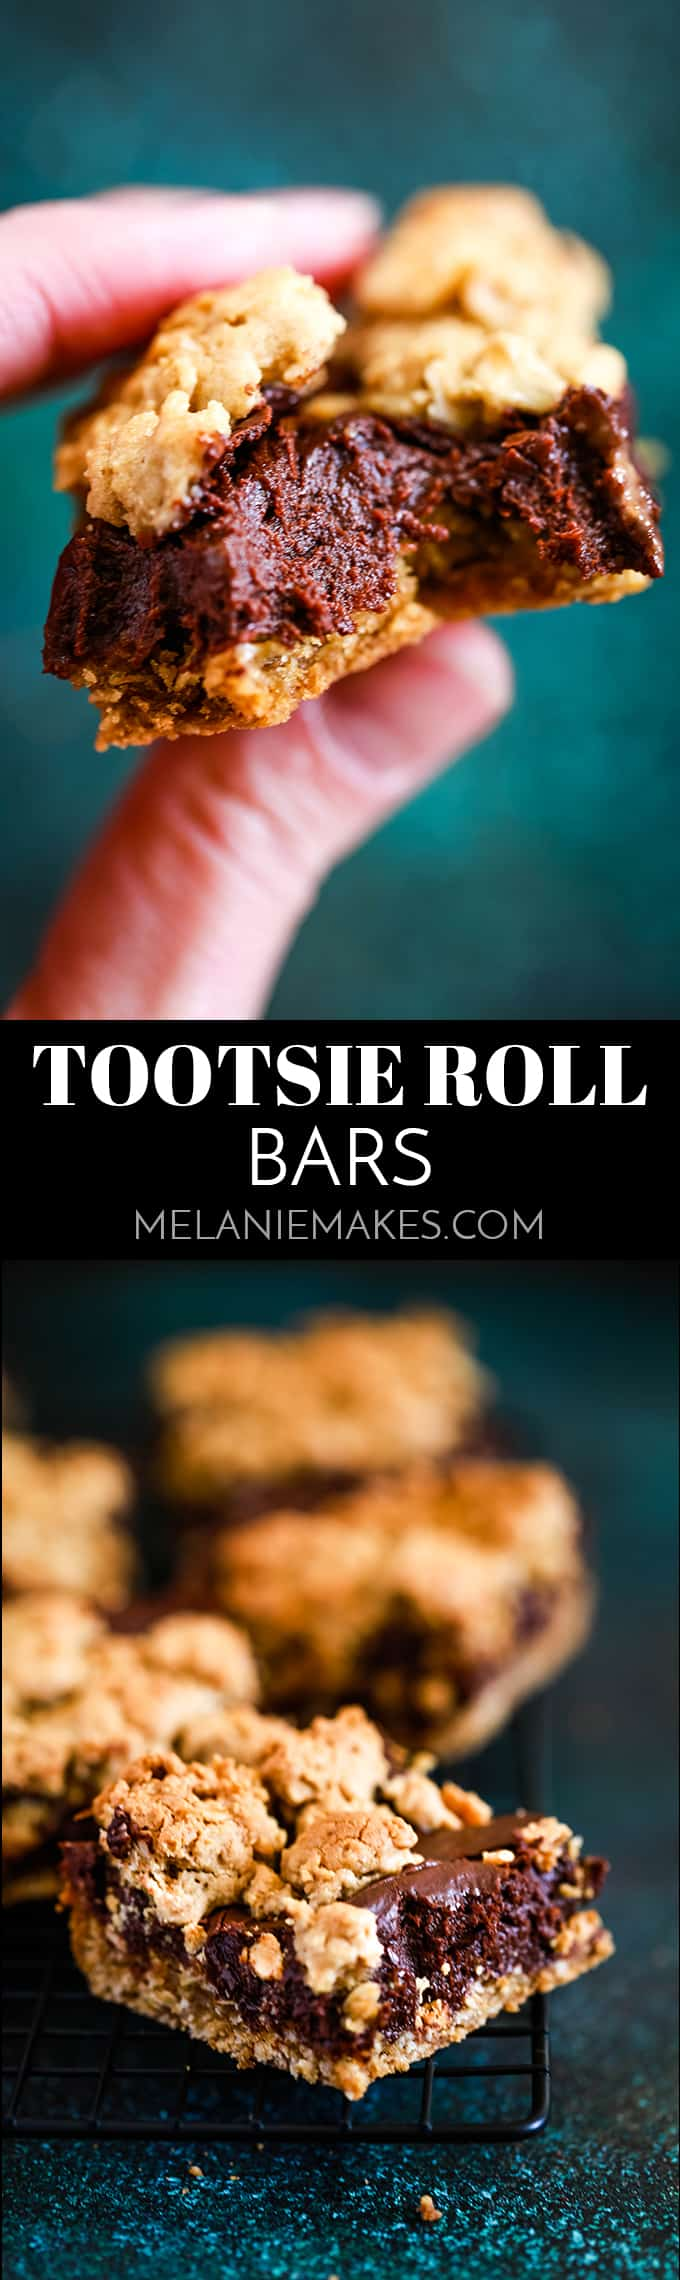 These Tootsie Roll Bars take feature an oatmeal cookie type base flooded with a fudgy Tootsie Roll like ganache. Decadence at it's finest! #desserts #dessertrecipes #easydesserts #chocolate #bars